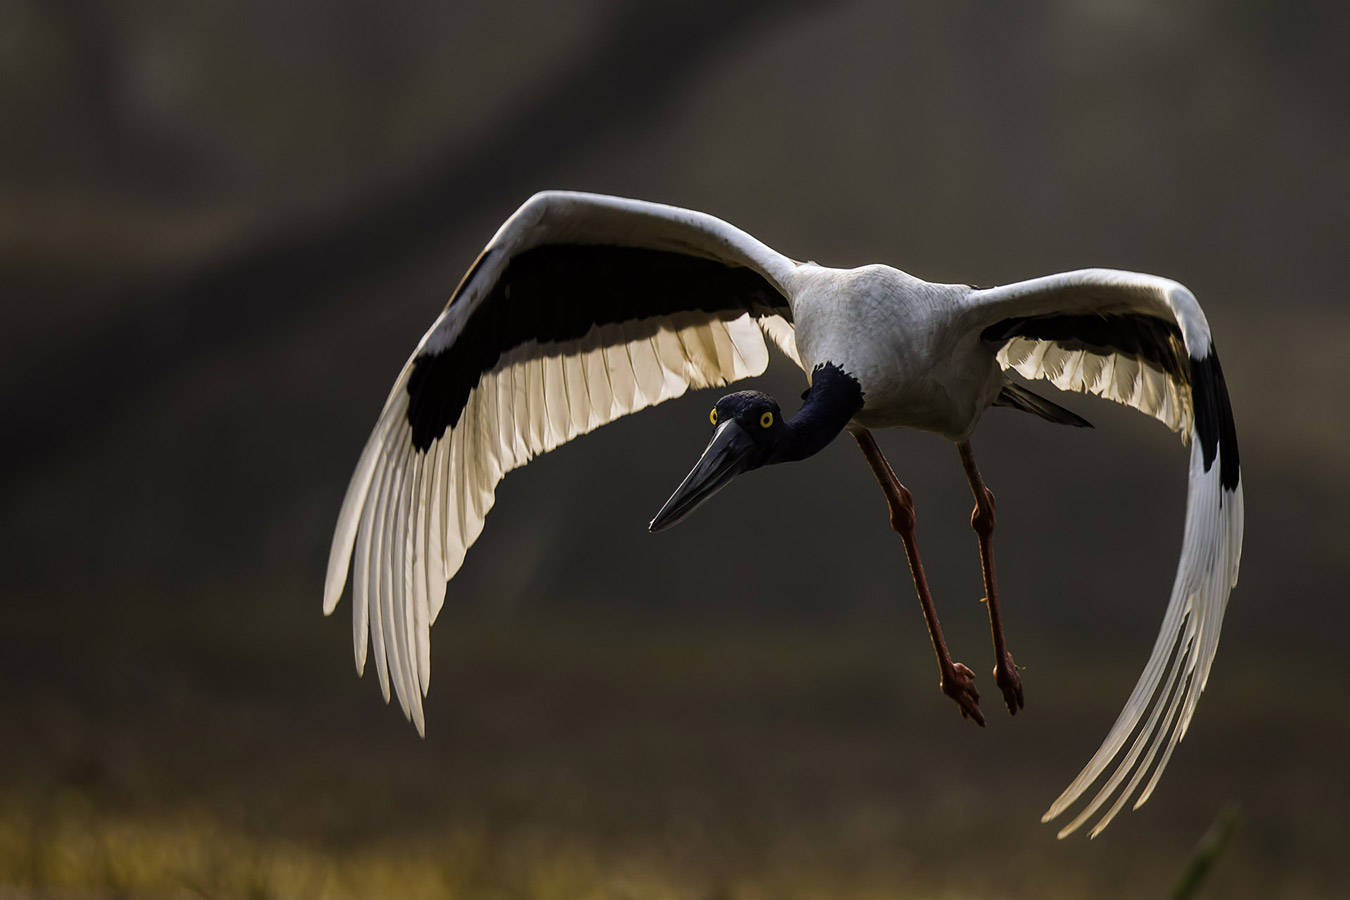 Black necked stork, © Indranil Basu Mallick, Pune, India, Highly Honored Birds, Nature's Best Photography Asia